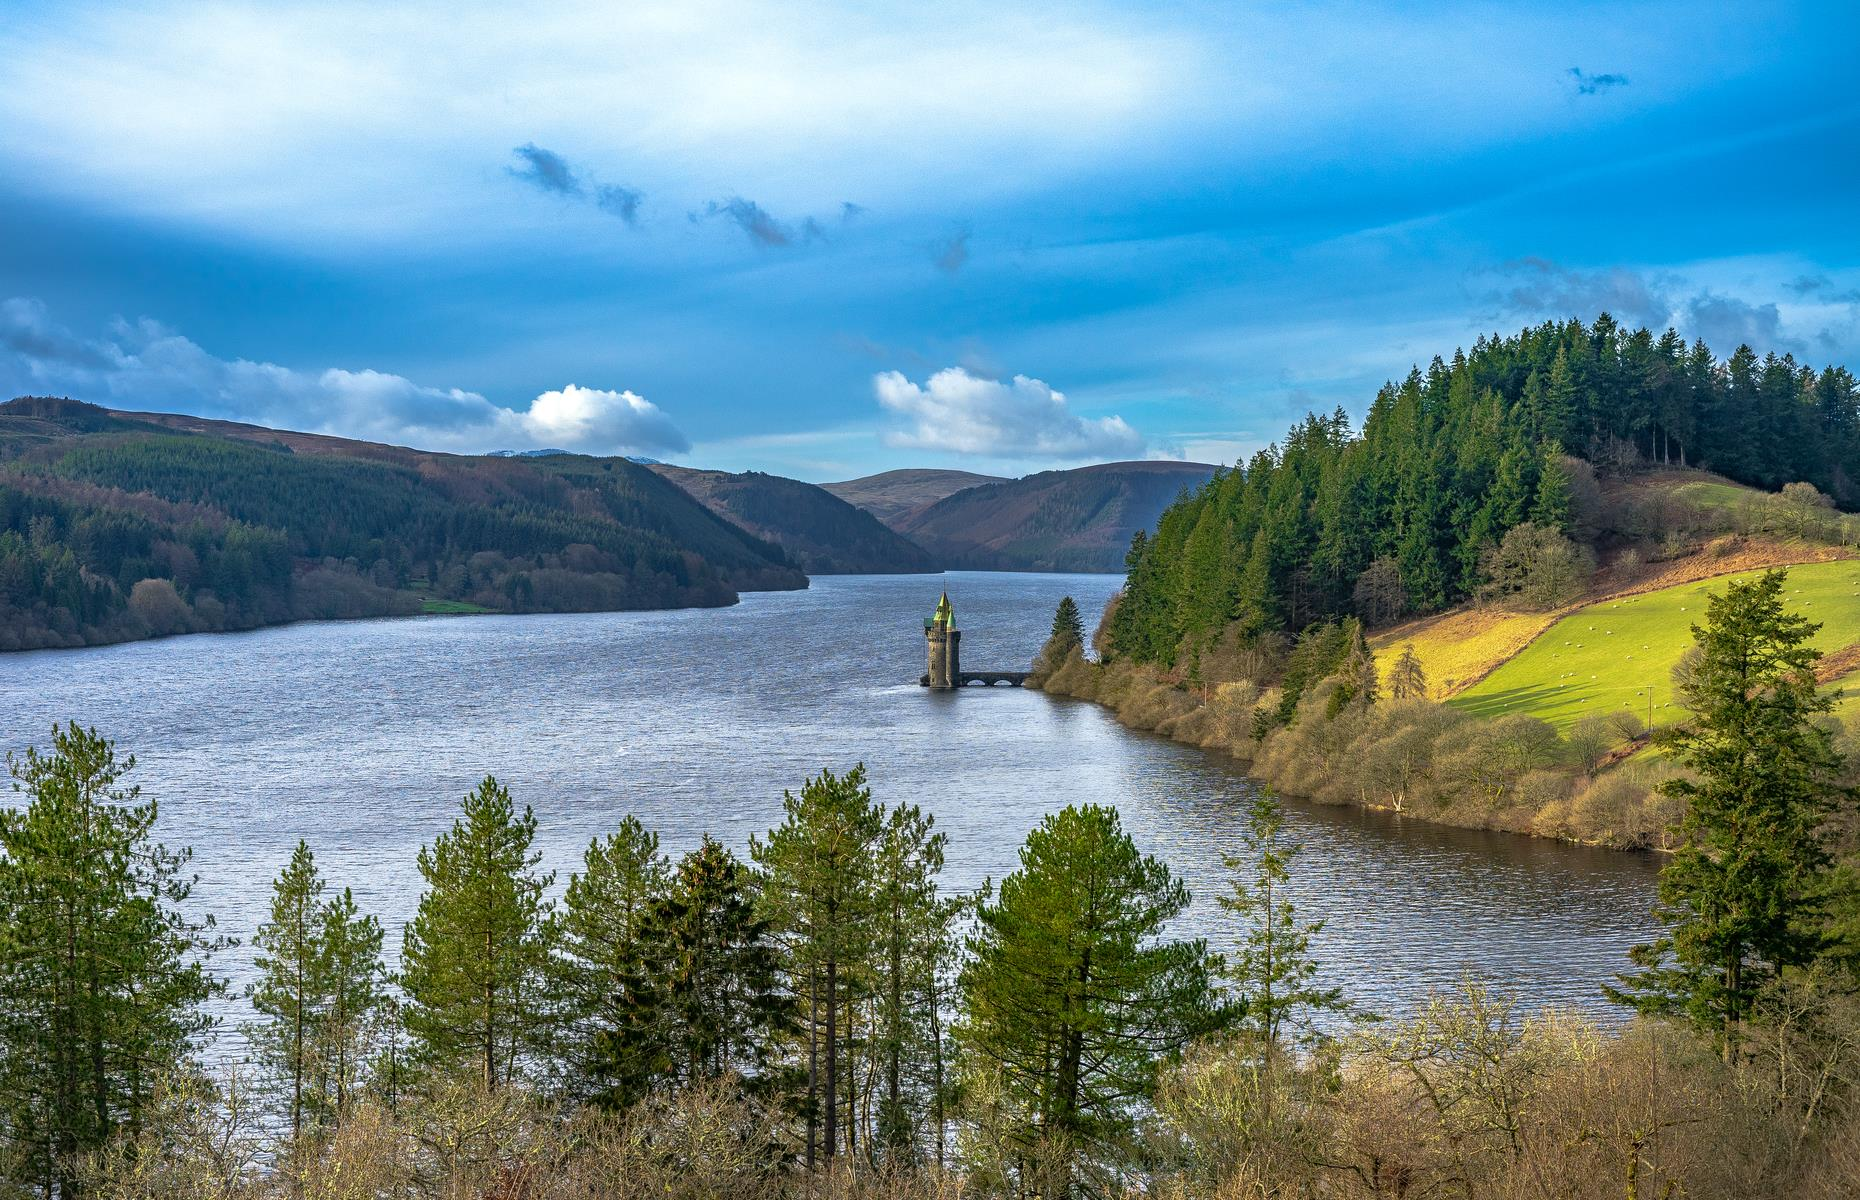 Slide 30 of 31: With its fairy tale-esque water tower and brooding mountainous surrounds, Lake Vyrnwy in Powys, Wales, is a dreamy spot. It's hard to believe that the stretch of water isn't natural, but the lake was created in the late 19th century to provide safe water to the rapidly growing city of Liverpool. The impressive stone dam that stretches across the Vyrnwy river valley was completed in 1889 – it was the first large stone-built dam in Britain. It flooded the old village of Llanwddyn, the remains of which can sometimes be seen when water levels are low. Check out more reasons to love Wales.